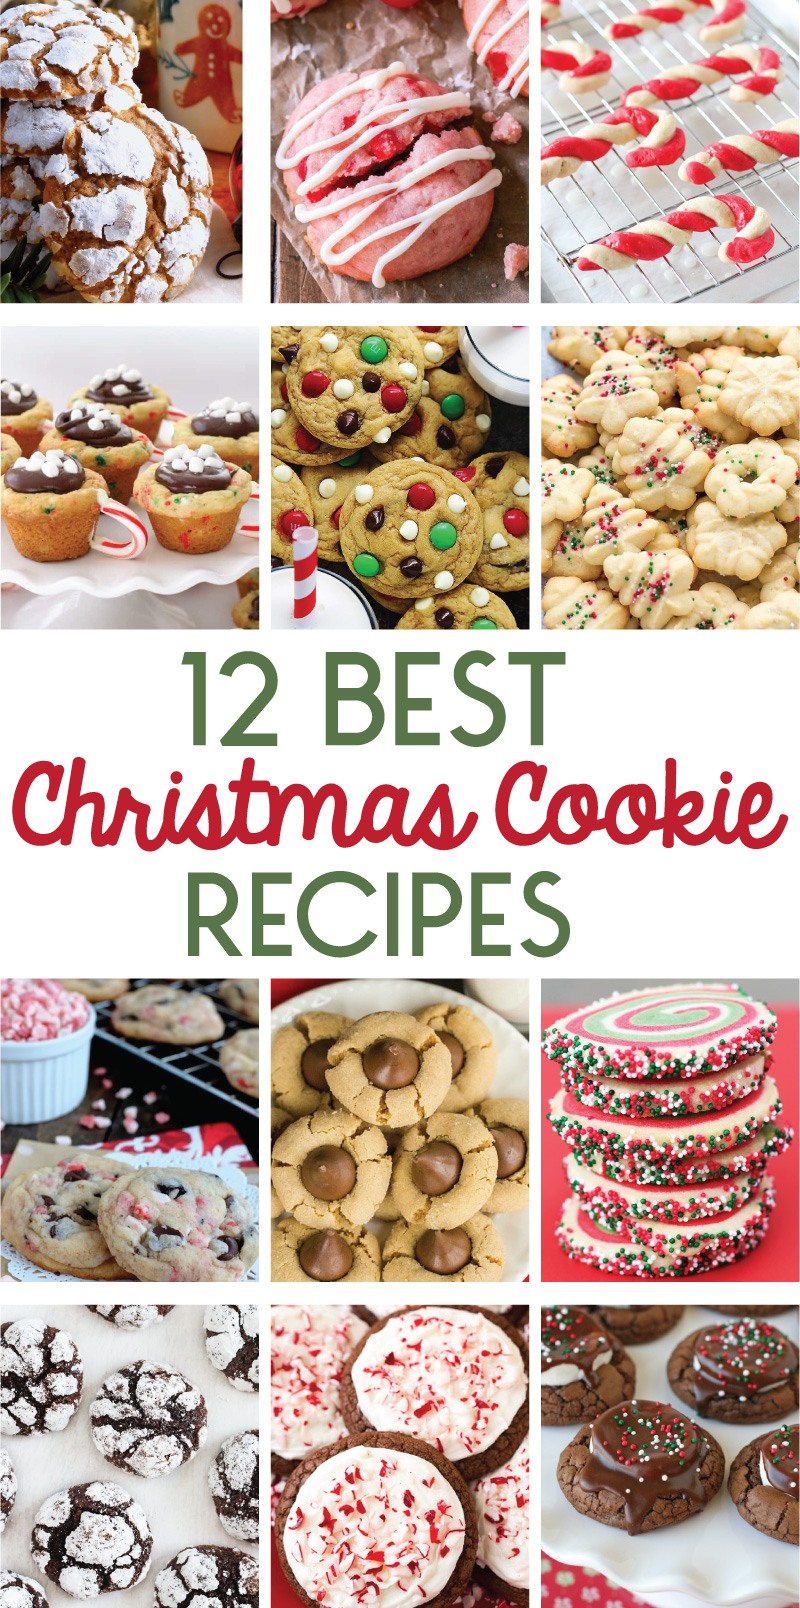 12 BEST Christmas Cookie Recipes on Love the Day | Grab your apron, turn on some Christmas tunes, and get ready to surprise your friends and family with the tastiest cookies on the block.